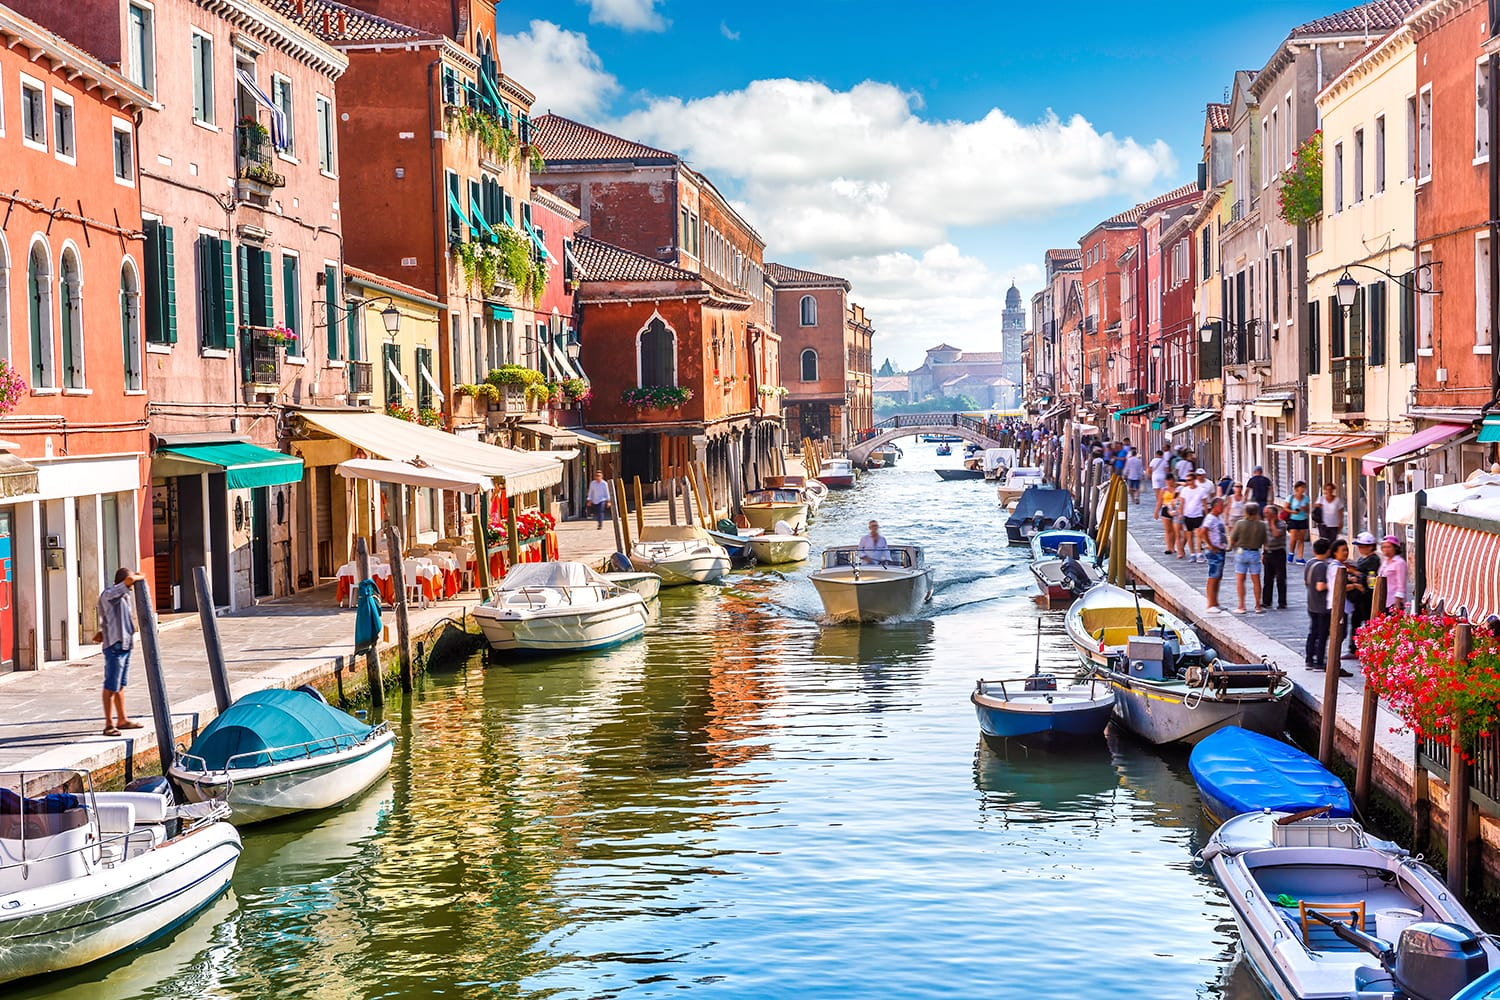 Island murano in Venice Italy. View on canal with boat and motorboat water.